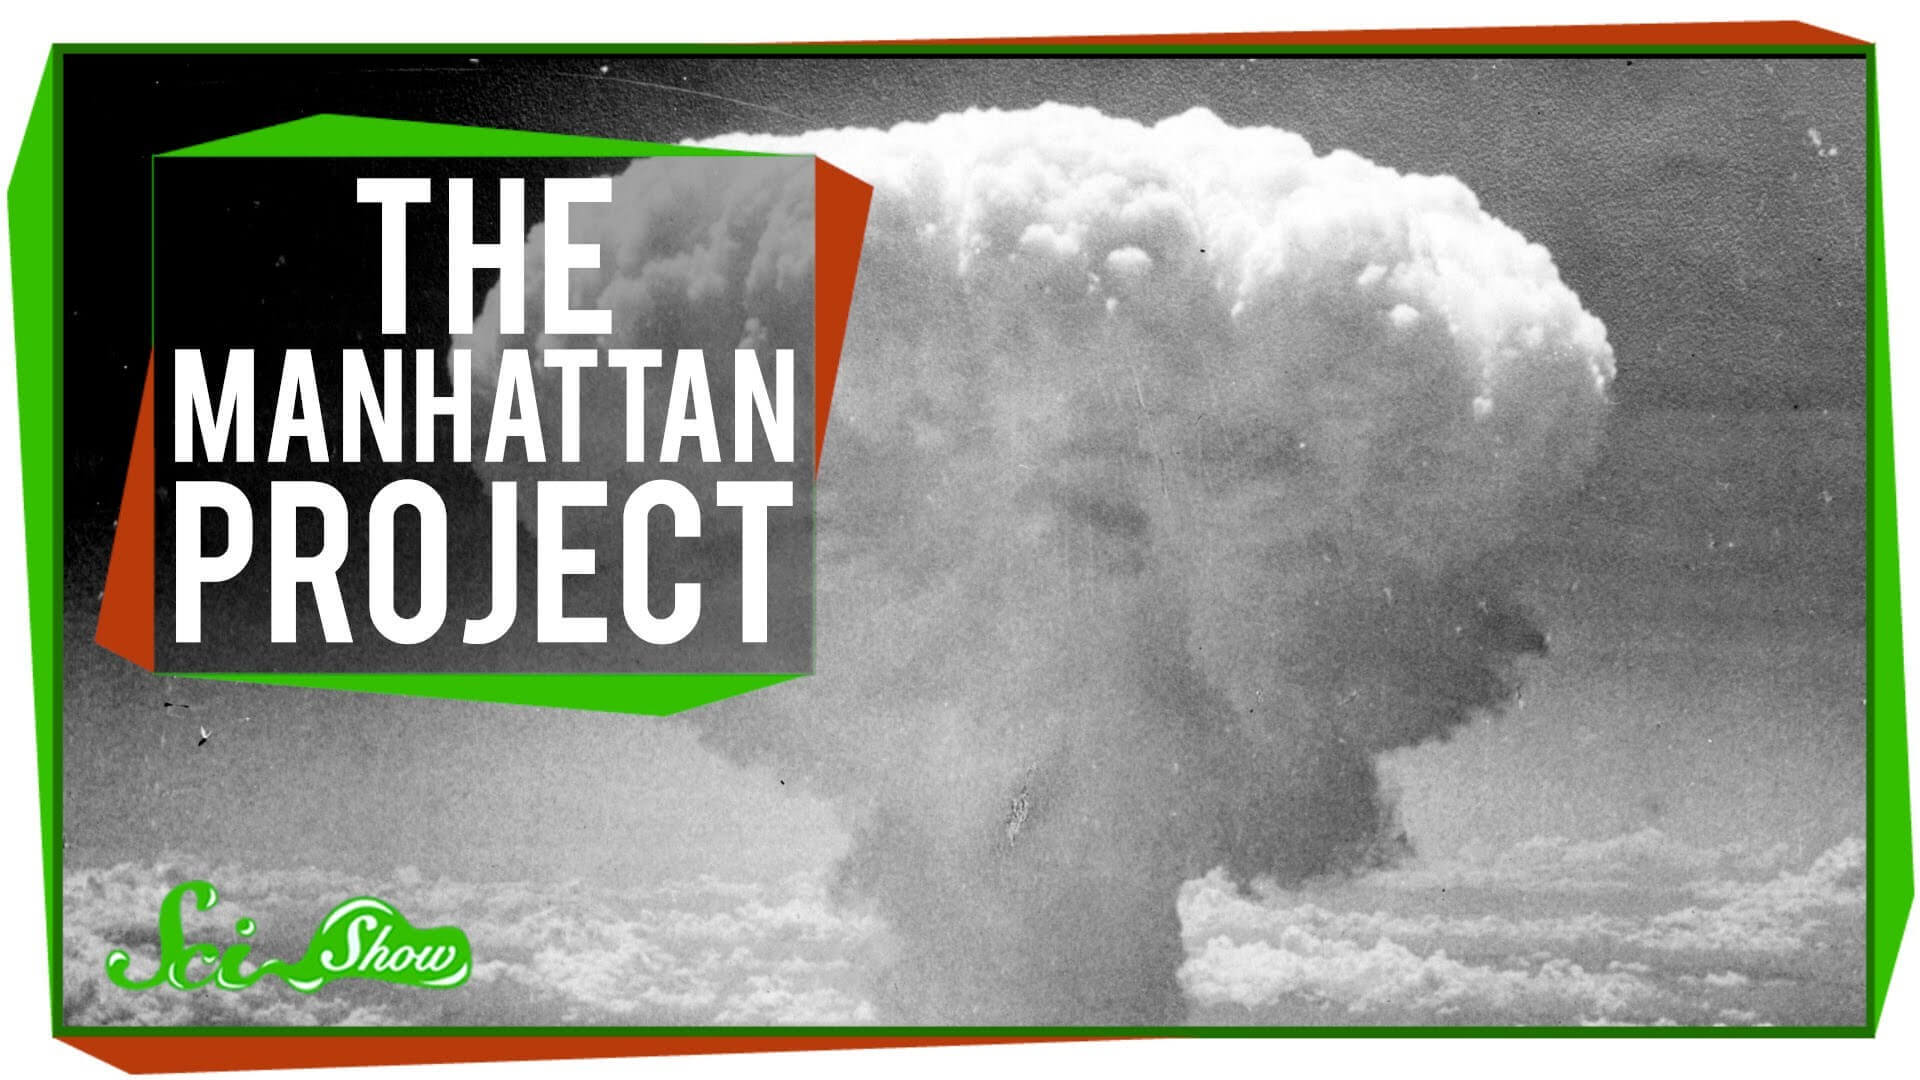 the history of the manhattan project The manhattan project: making the atomic bomb is a short history of the origins and development of the american atomic bomb program during world war ii.